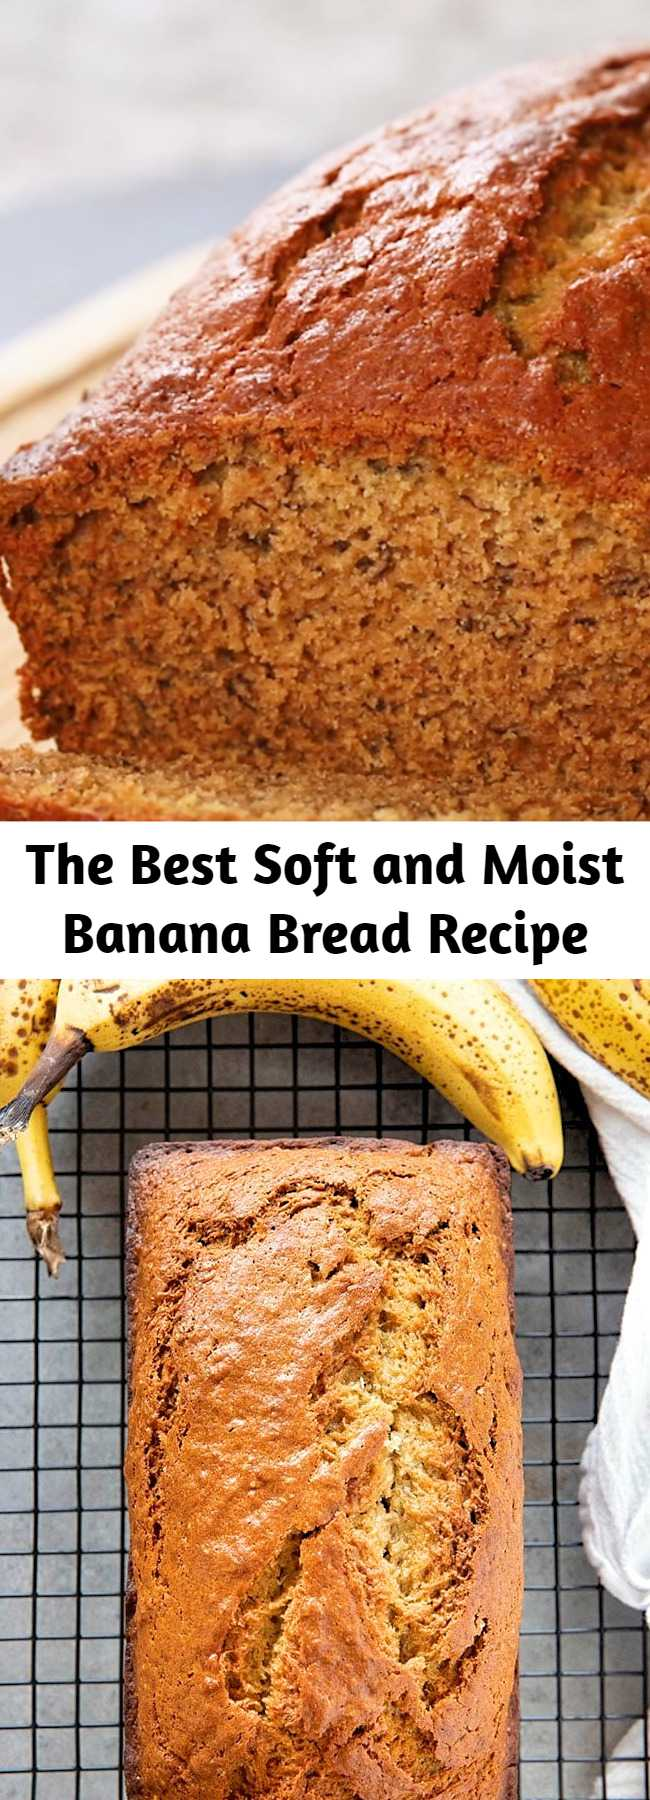 The Best Soft and Moist Banana Bread Recipe - Best Banana Bread Recipe is so easy to make and super soft and moist! The very best way to use up overripe bananas this bread is tender and packed full of flavor!